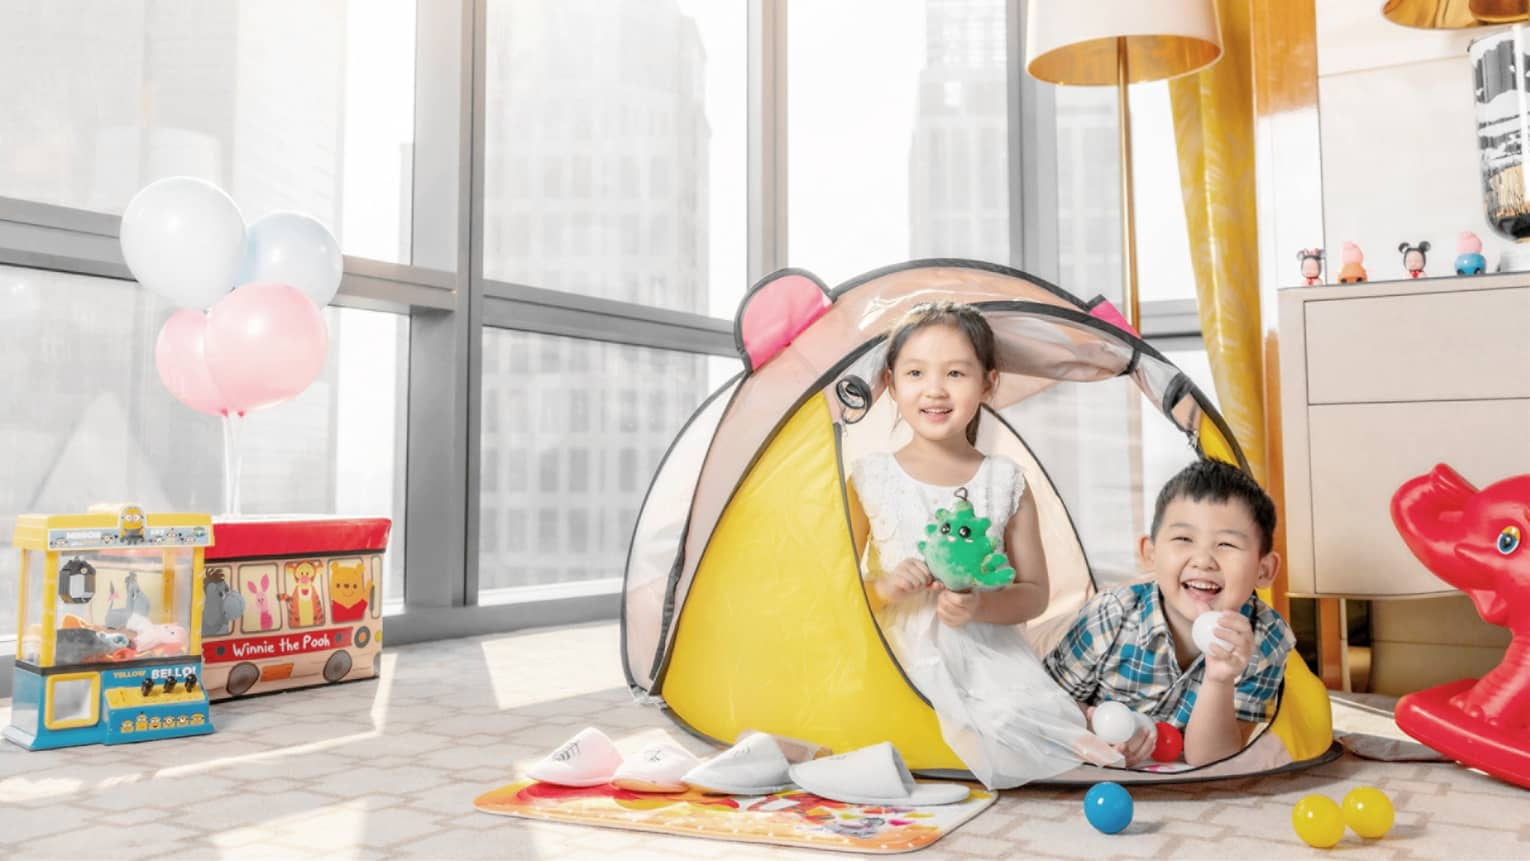 Two children play in a hotel room in Tianjin with windows facing the city